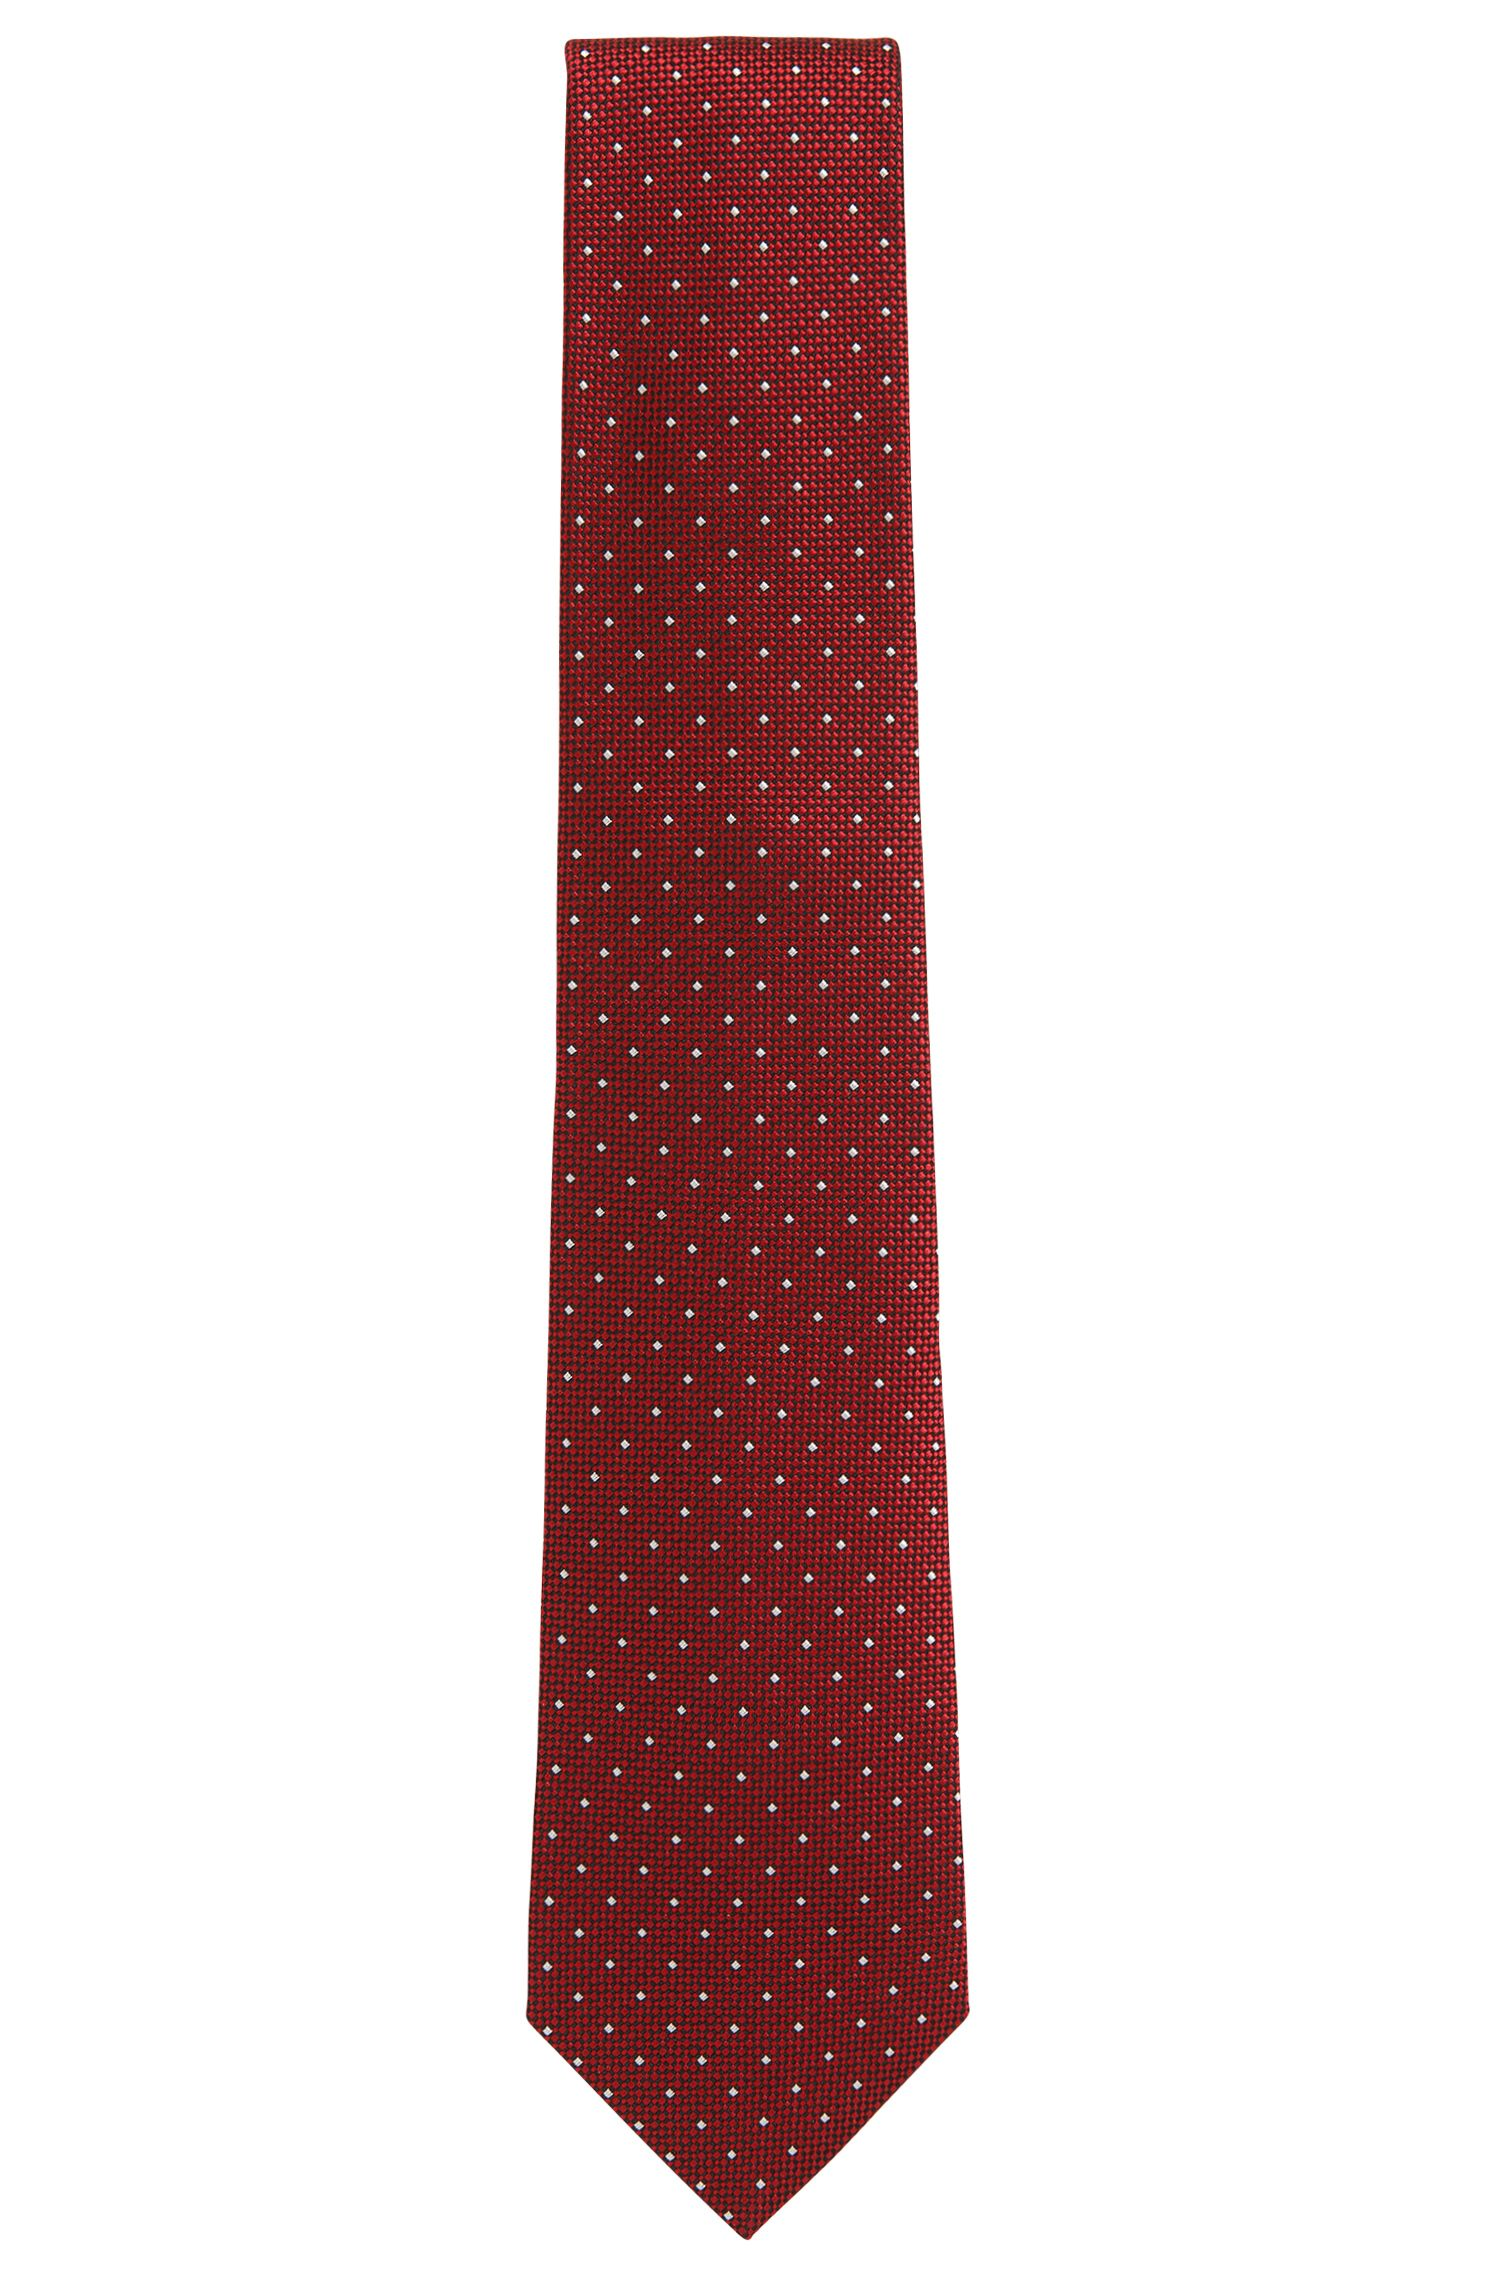 BOSS Tailored Polka Dot Dobby Italian Silk Tie